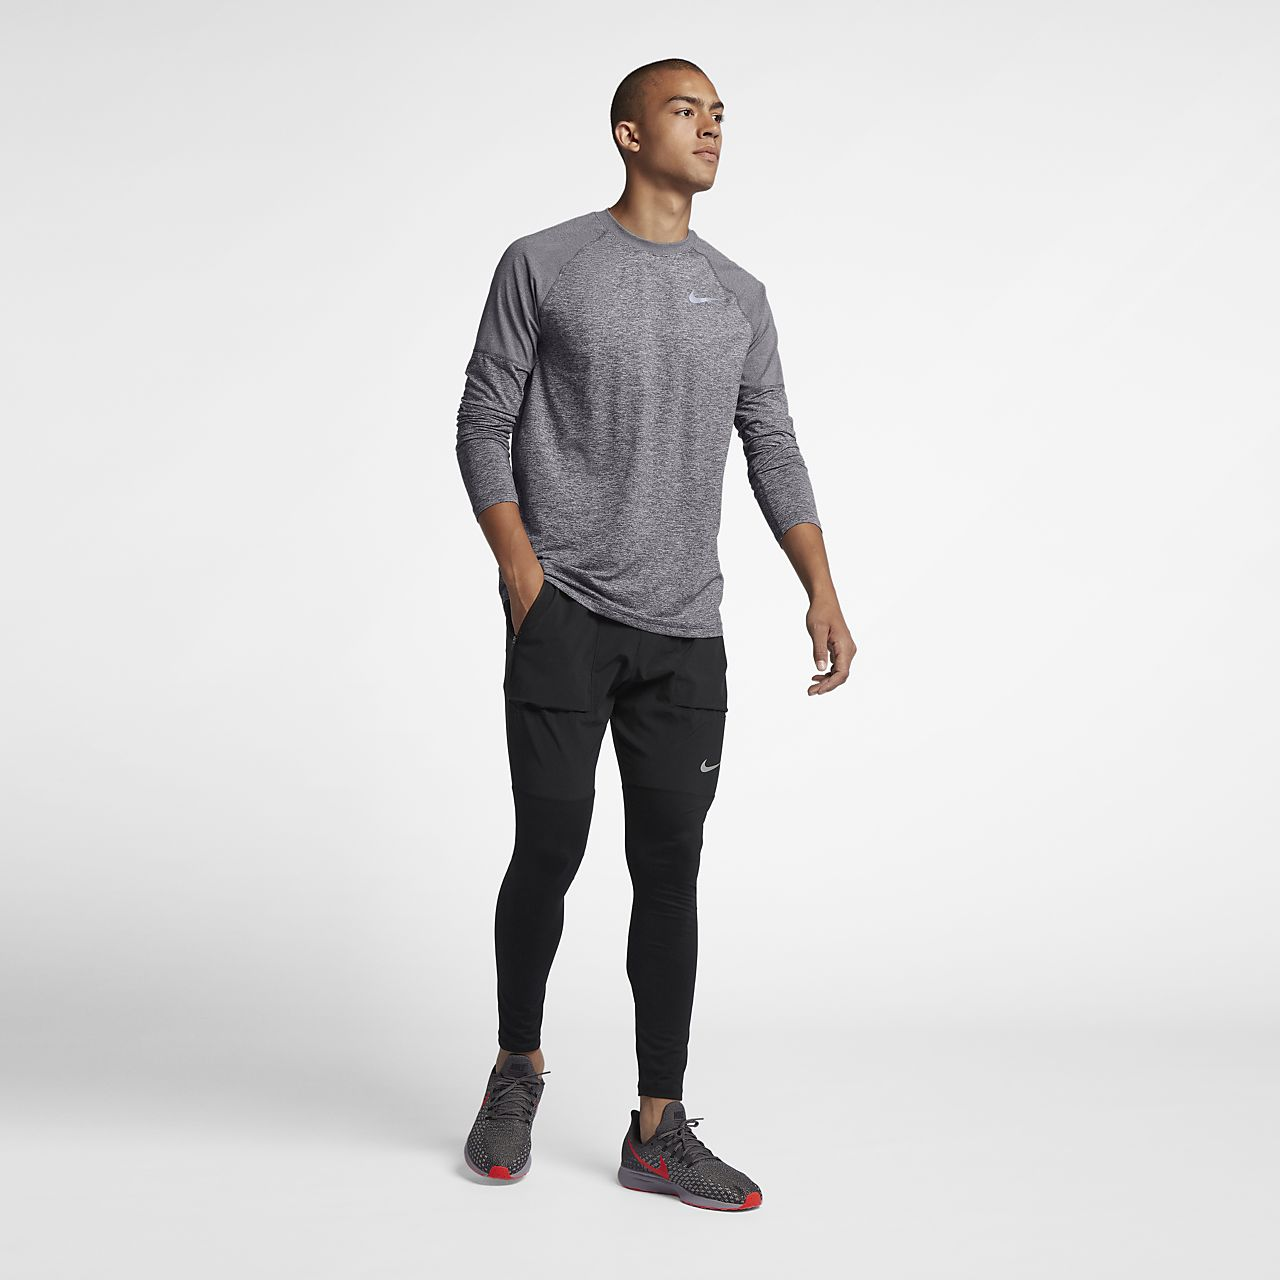 dfc4f434 Nike Element Men's Running Top. Nike.com